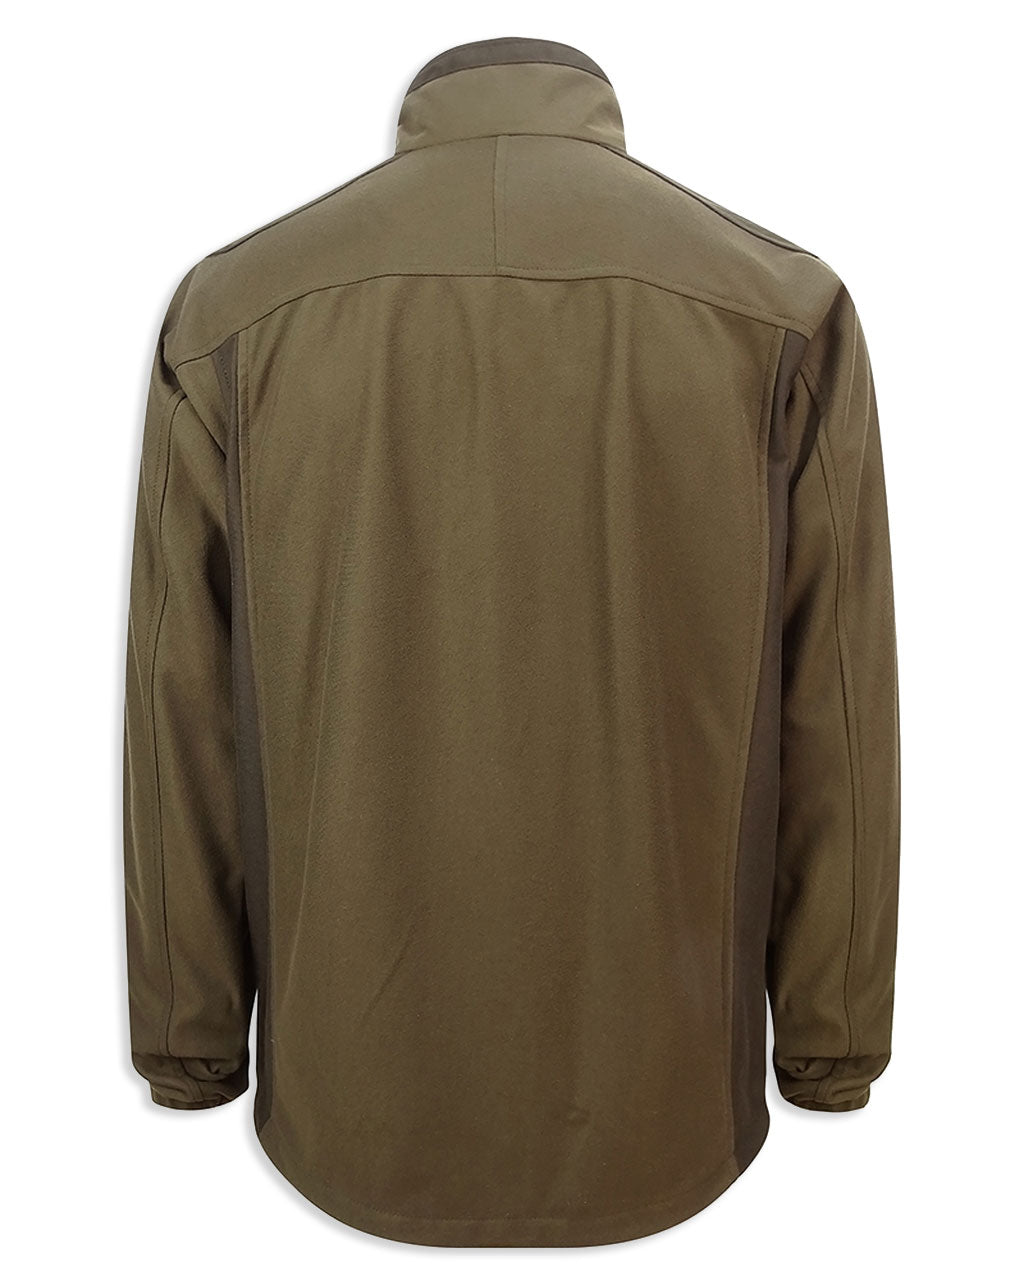 Back View Hoggs Kinross Waterproof Field Jacket